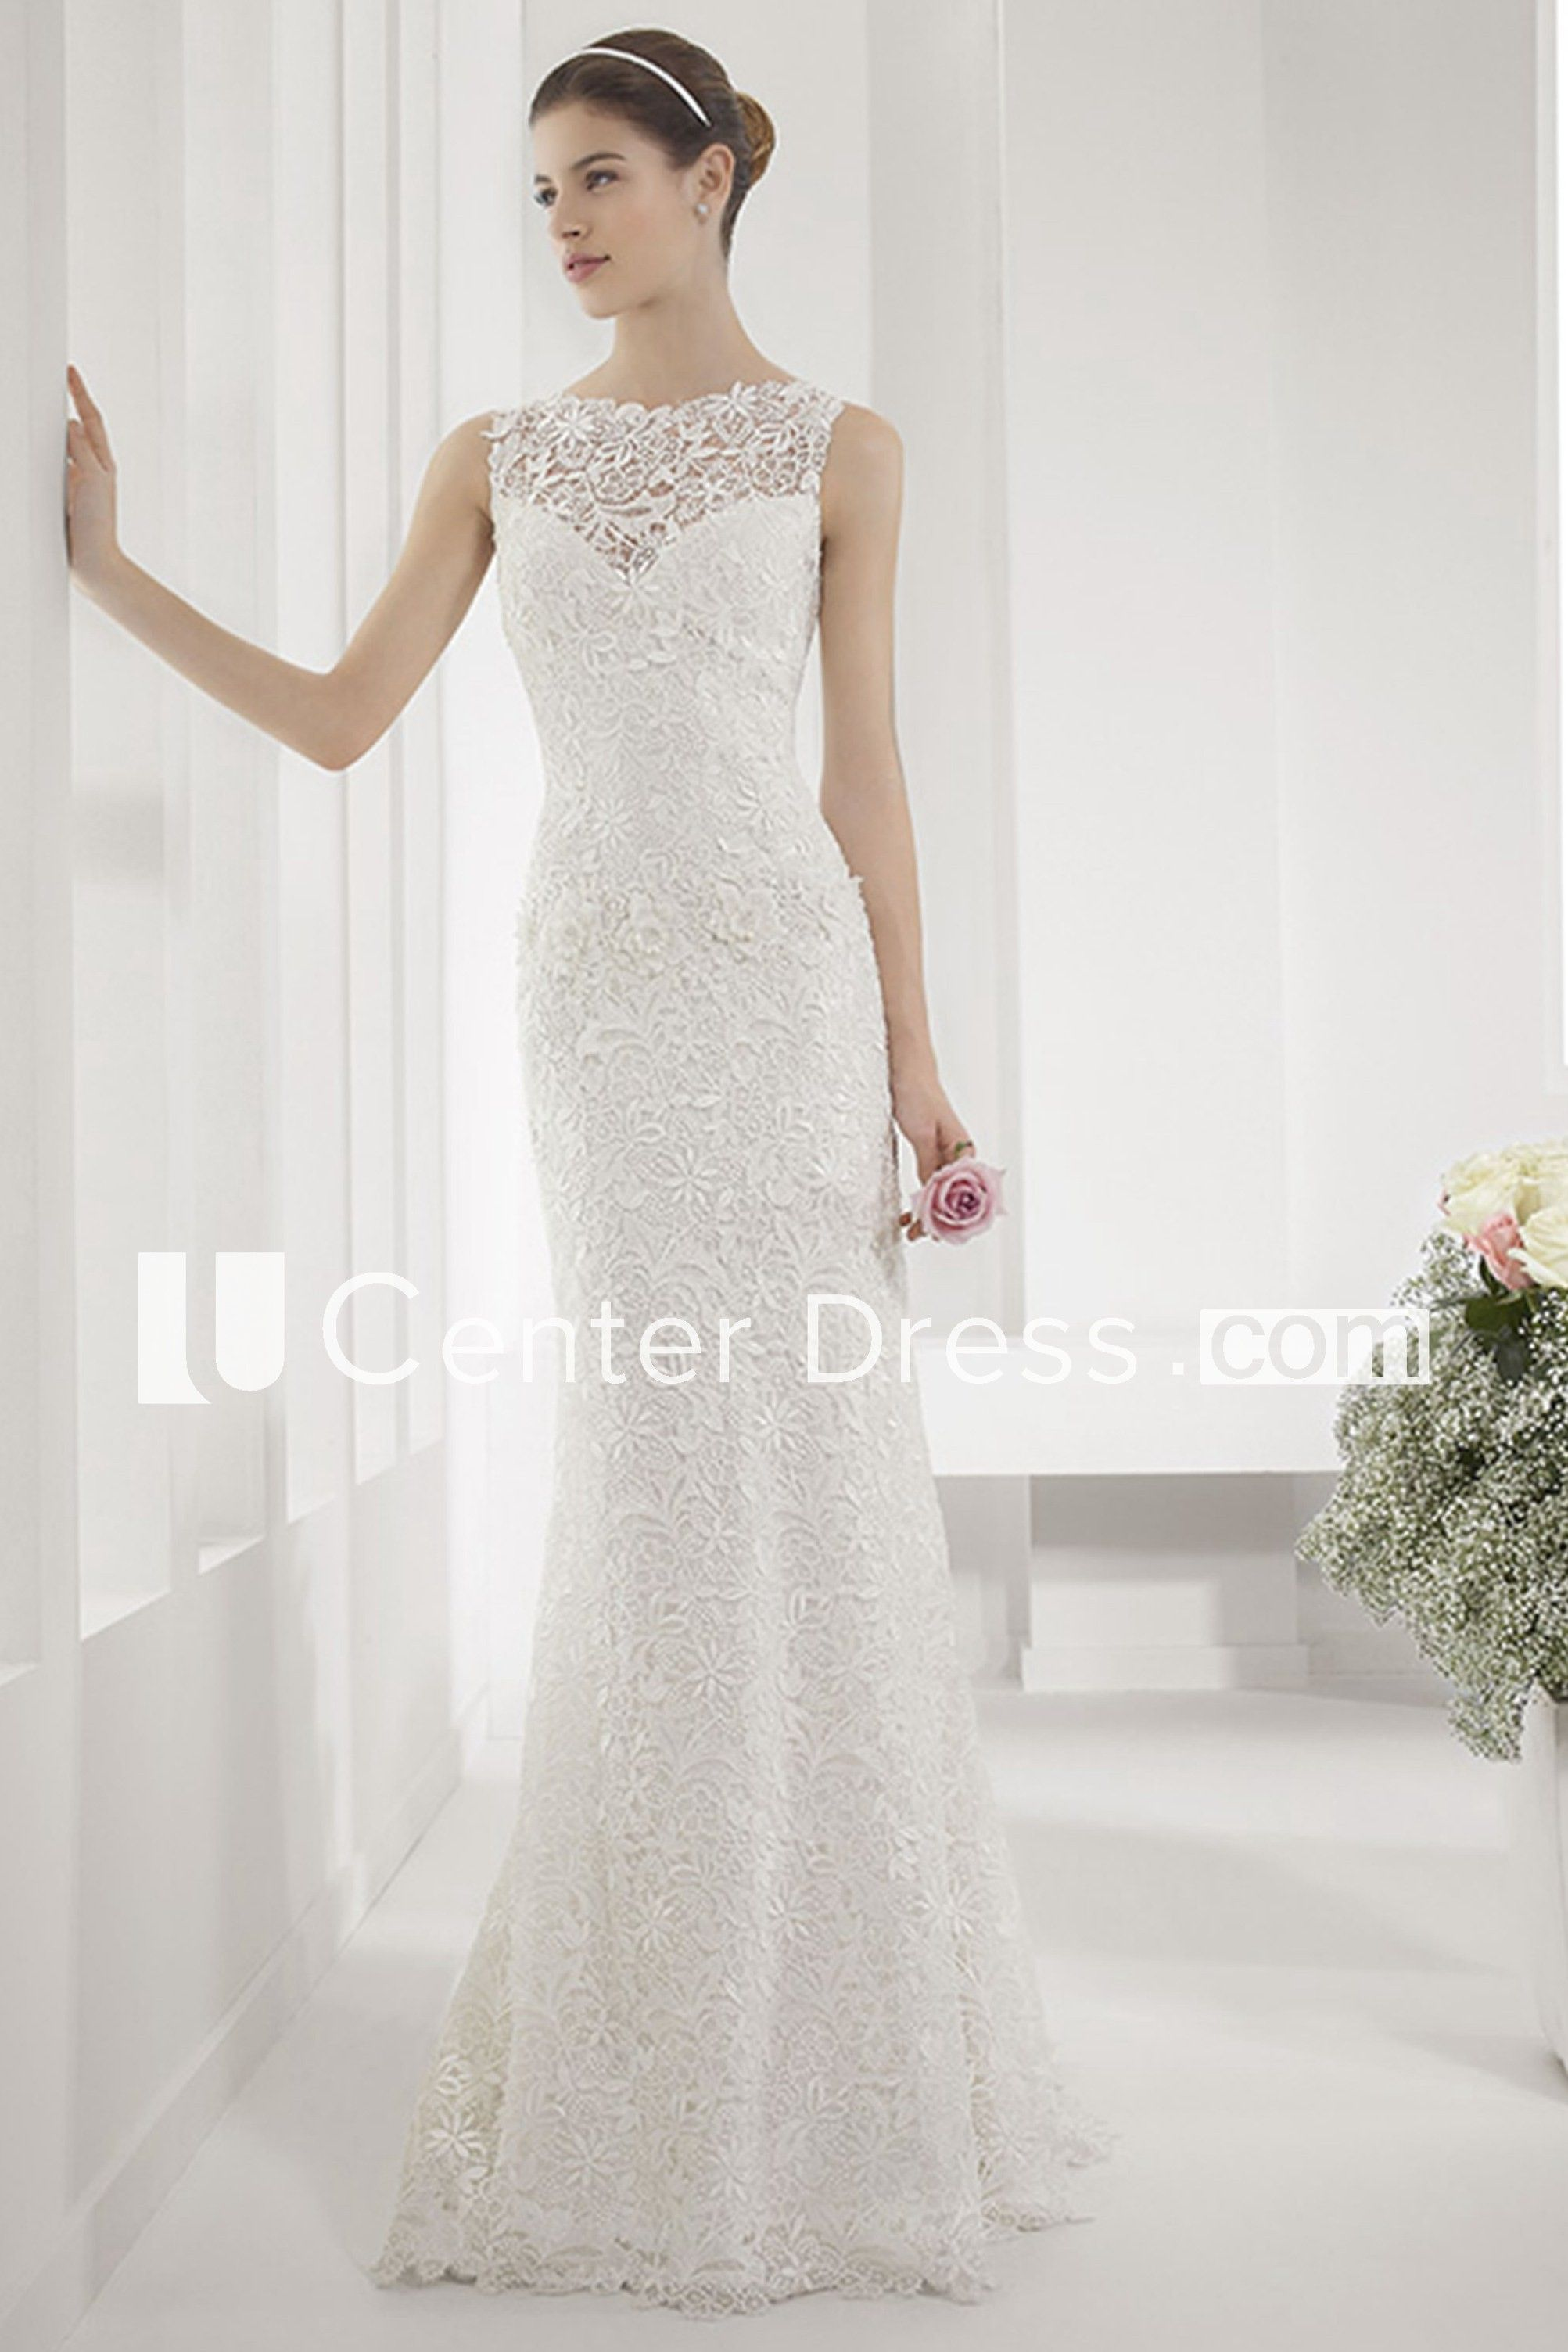 Wedding dress with straps  Allover Lace Illusion Neck Sheath Wedding Gown With Back Keyhole